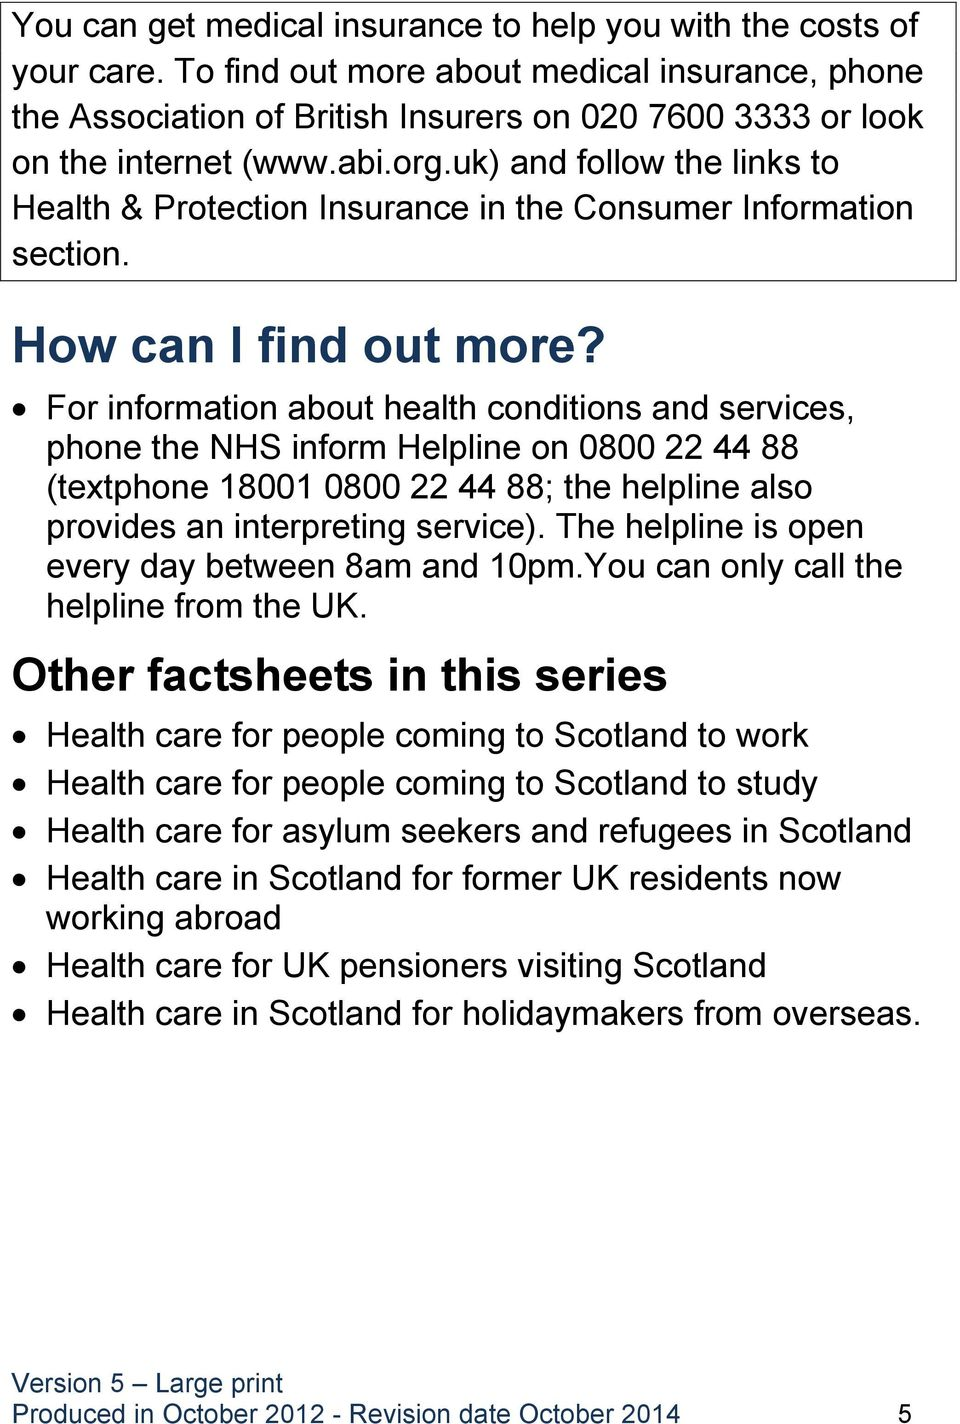 uk) and follow the links to Health & Protection Insurance in the Consumer Information section. How can I find out more?